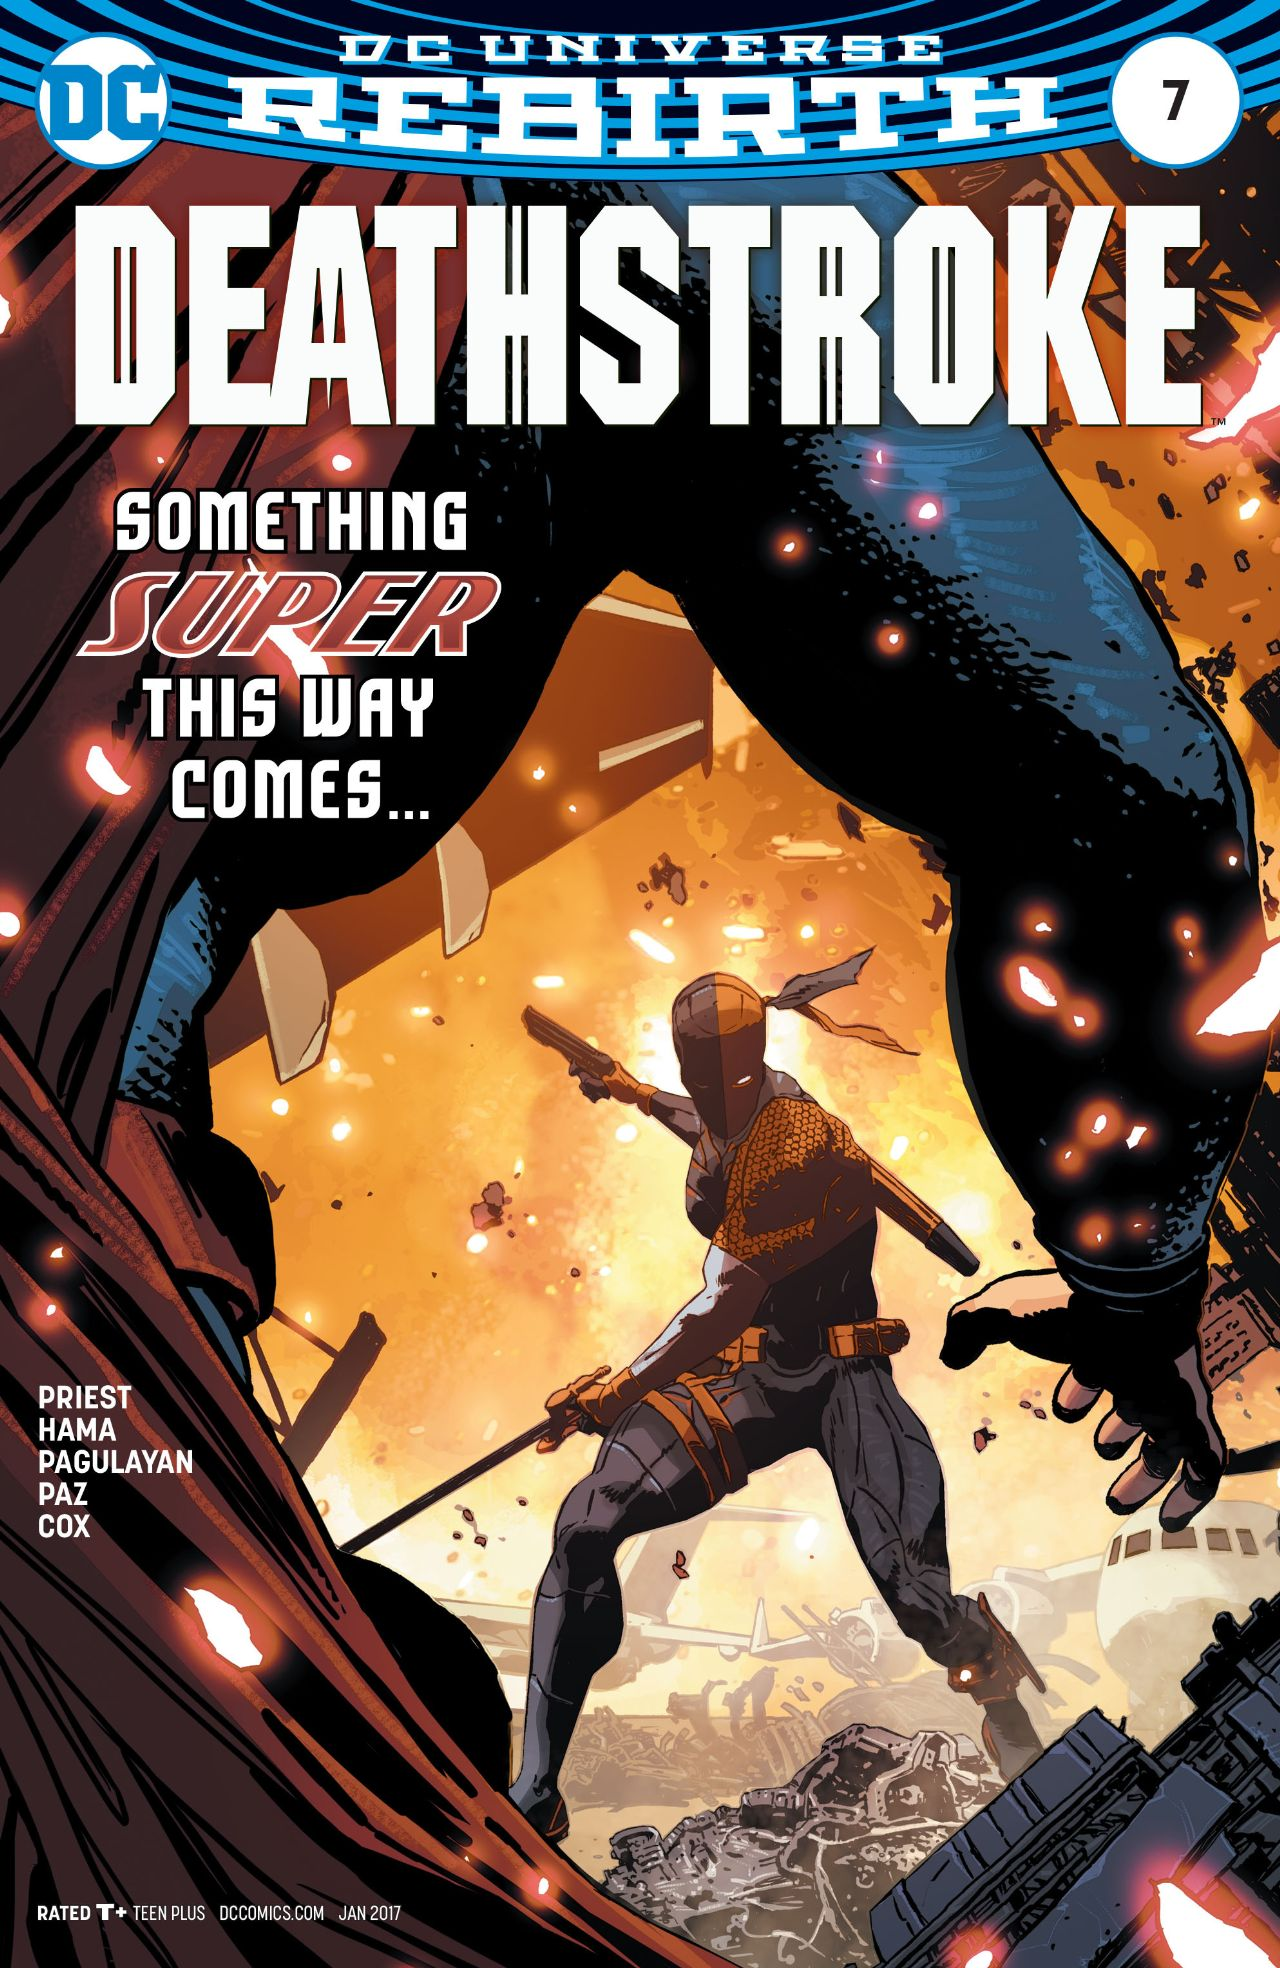 Deathstroke Vol 4 7